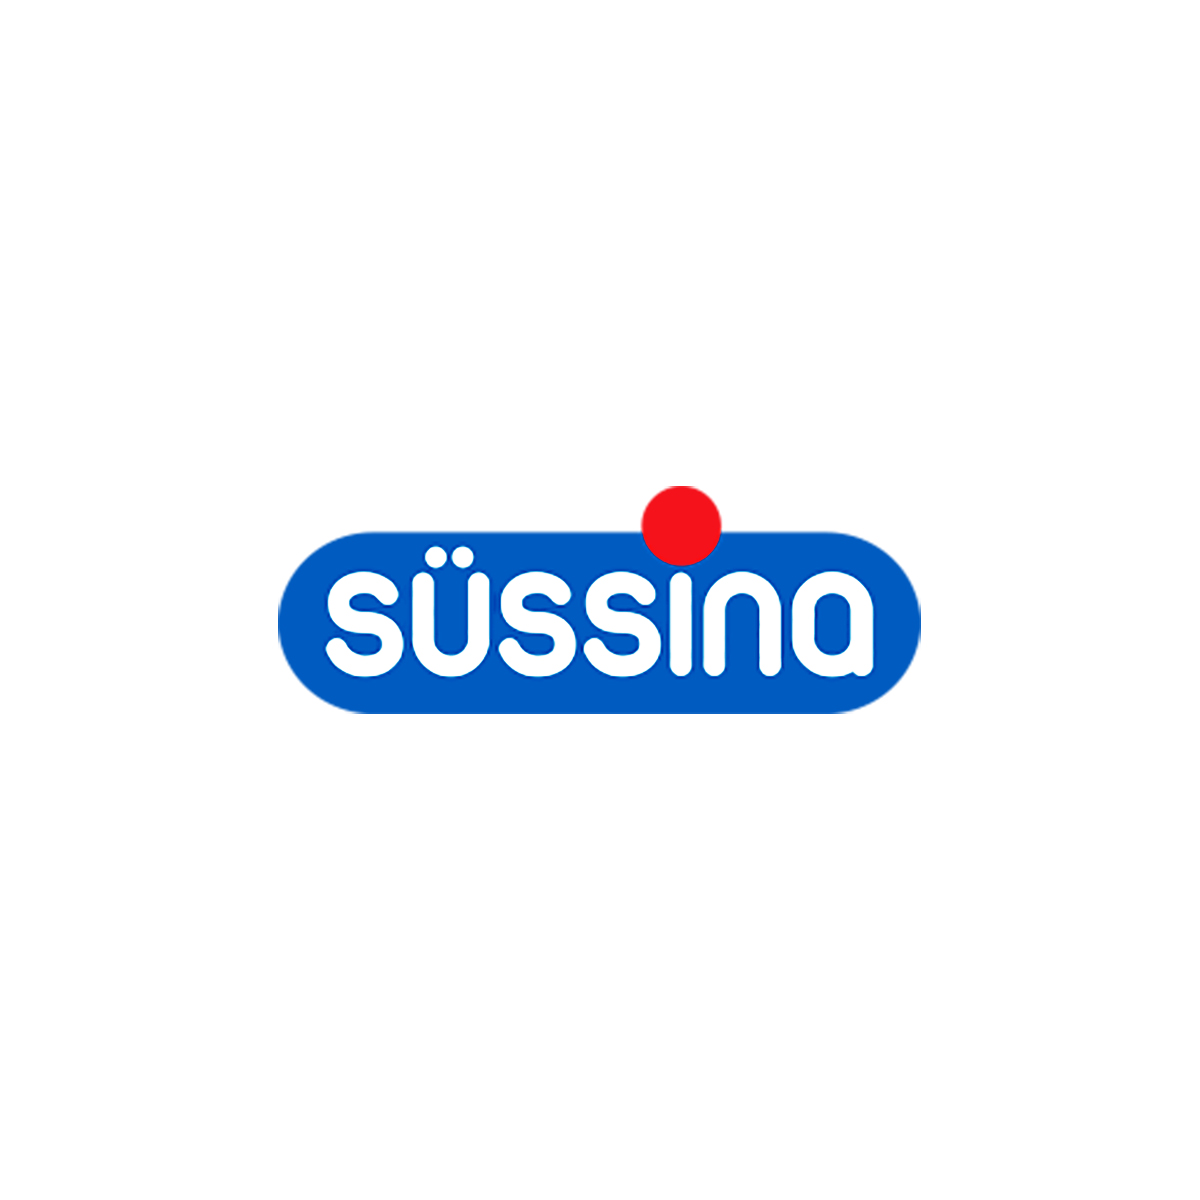 Sussina